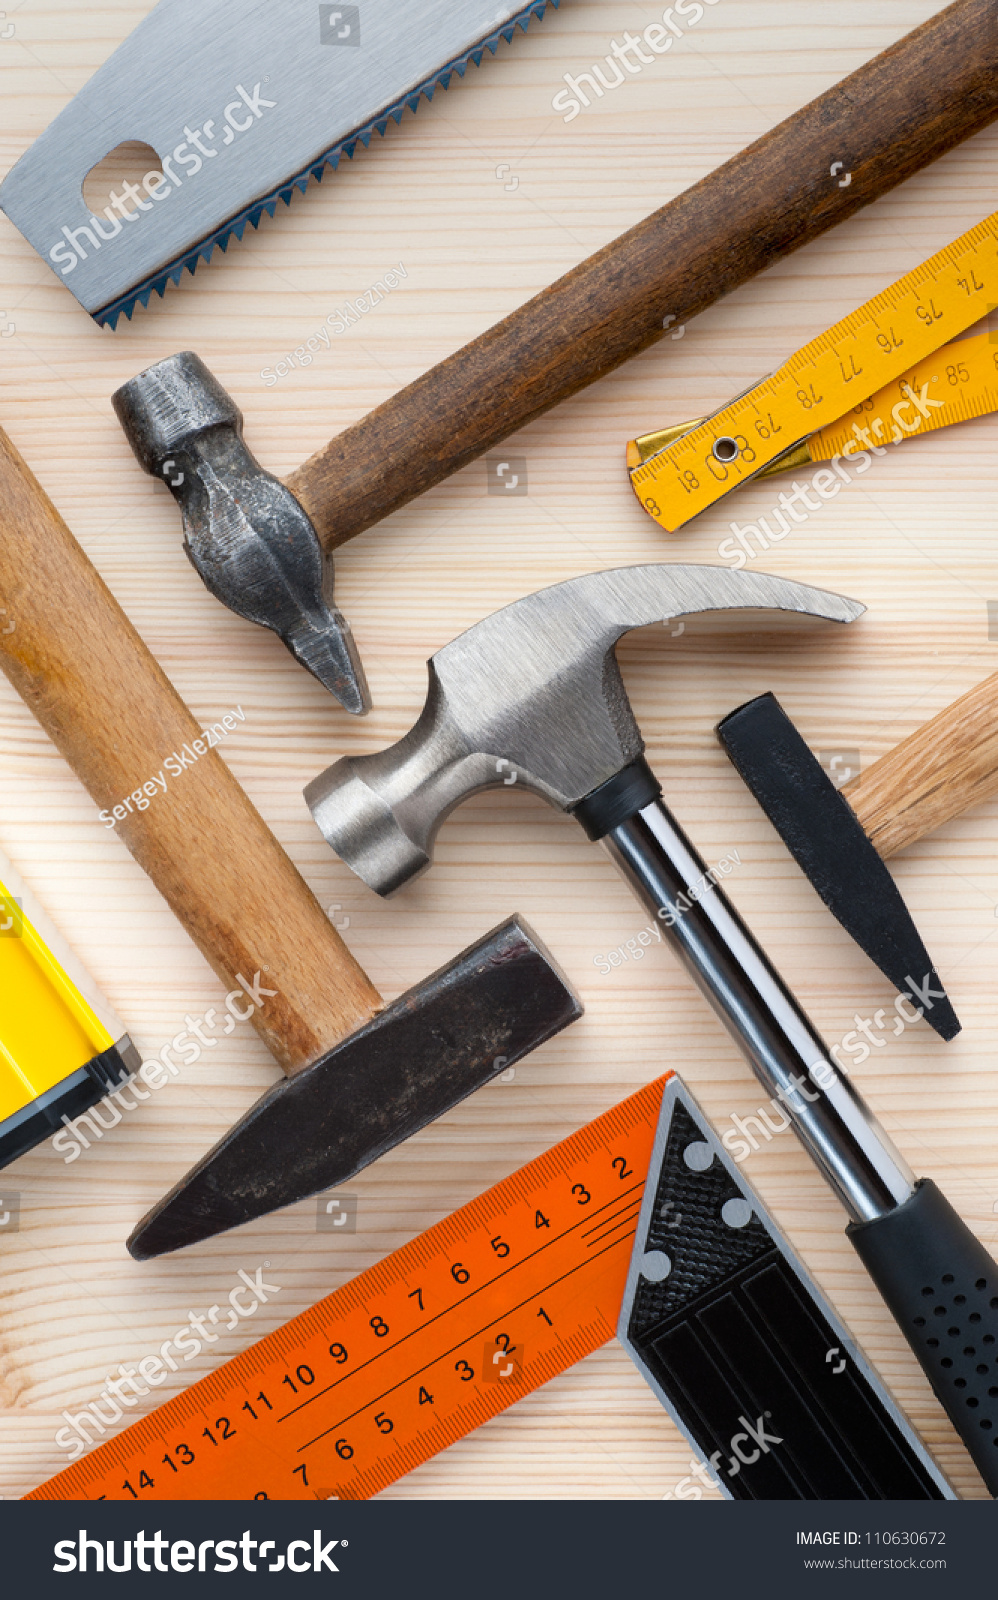 Woodworking equipment for construction and repair 63